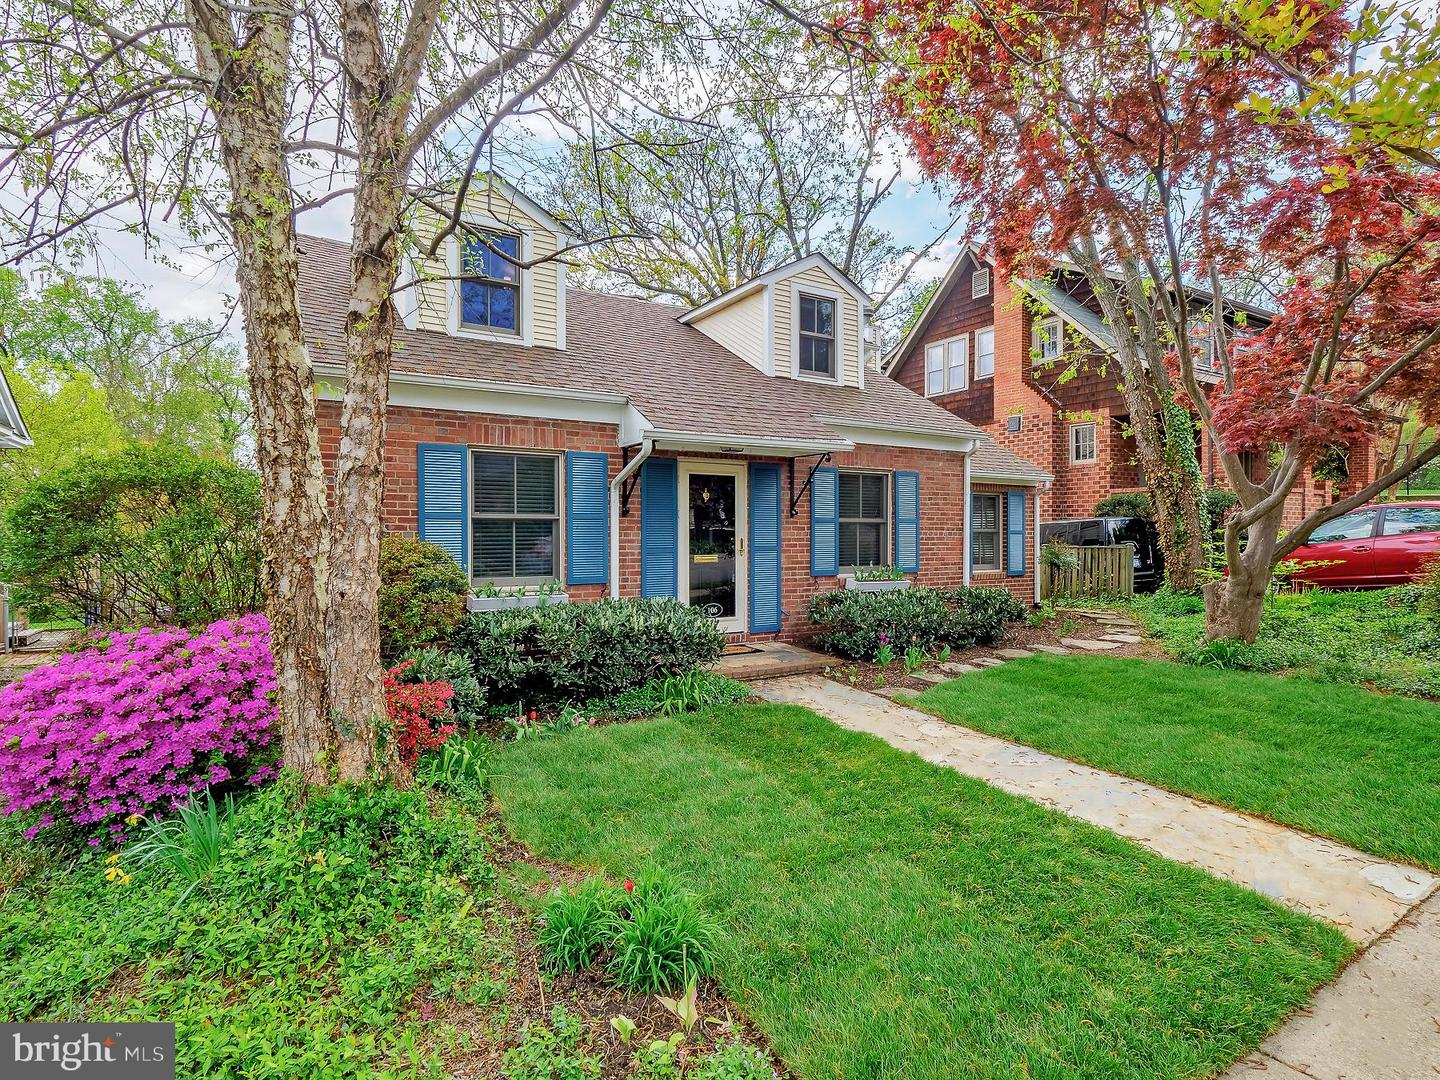 106 HOWELL AVENUE, ALEXANDRIA, Virginia 22301, 4 Bedrooms Bedrooms, ,2 BathroomsBathrooms,Residential,For Sale,HOWELL,VAAX258478